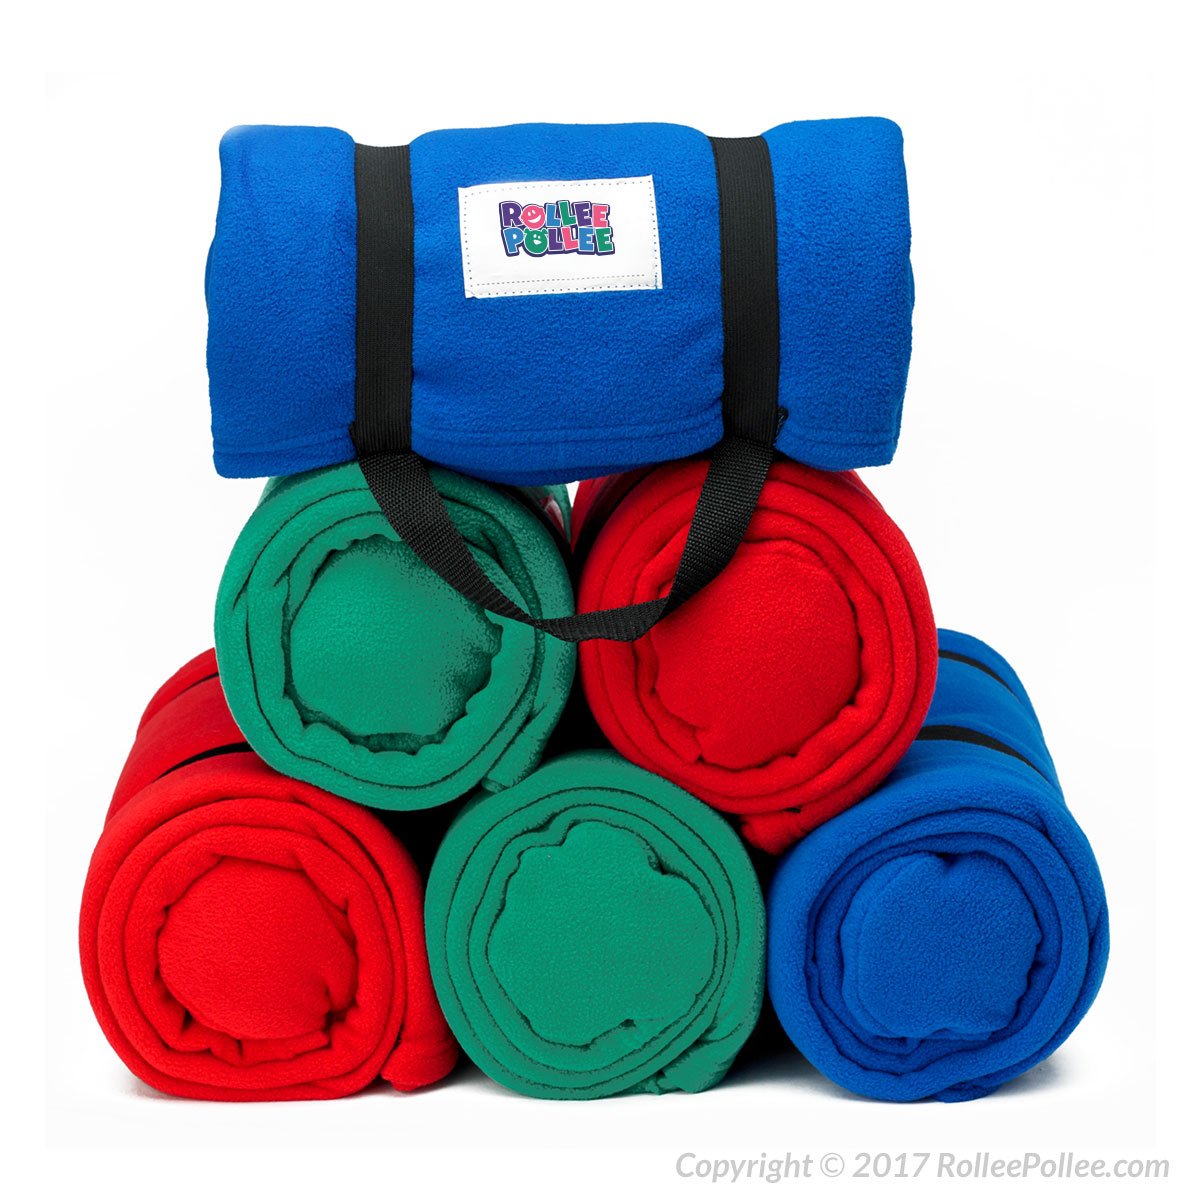 Rollee Pollee Nap Sac - a blanket and pillow in ONE bundle of FUN!